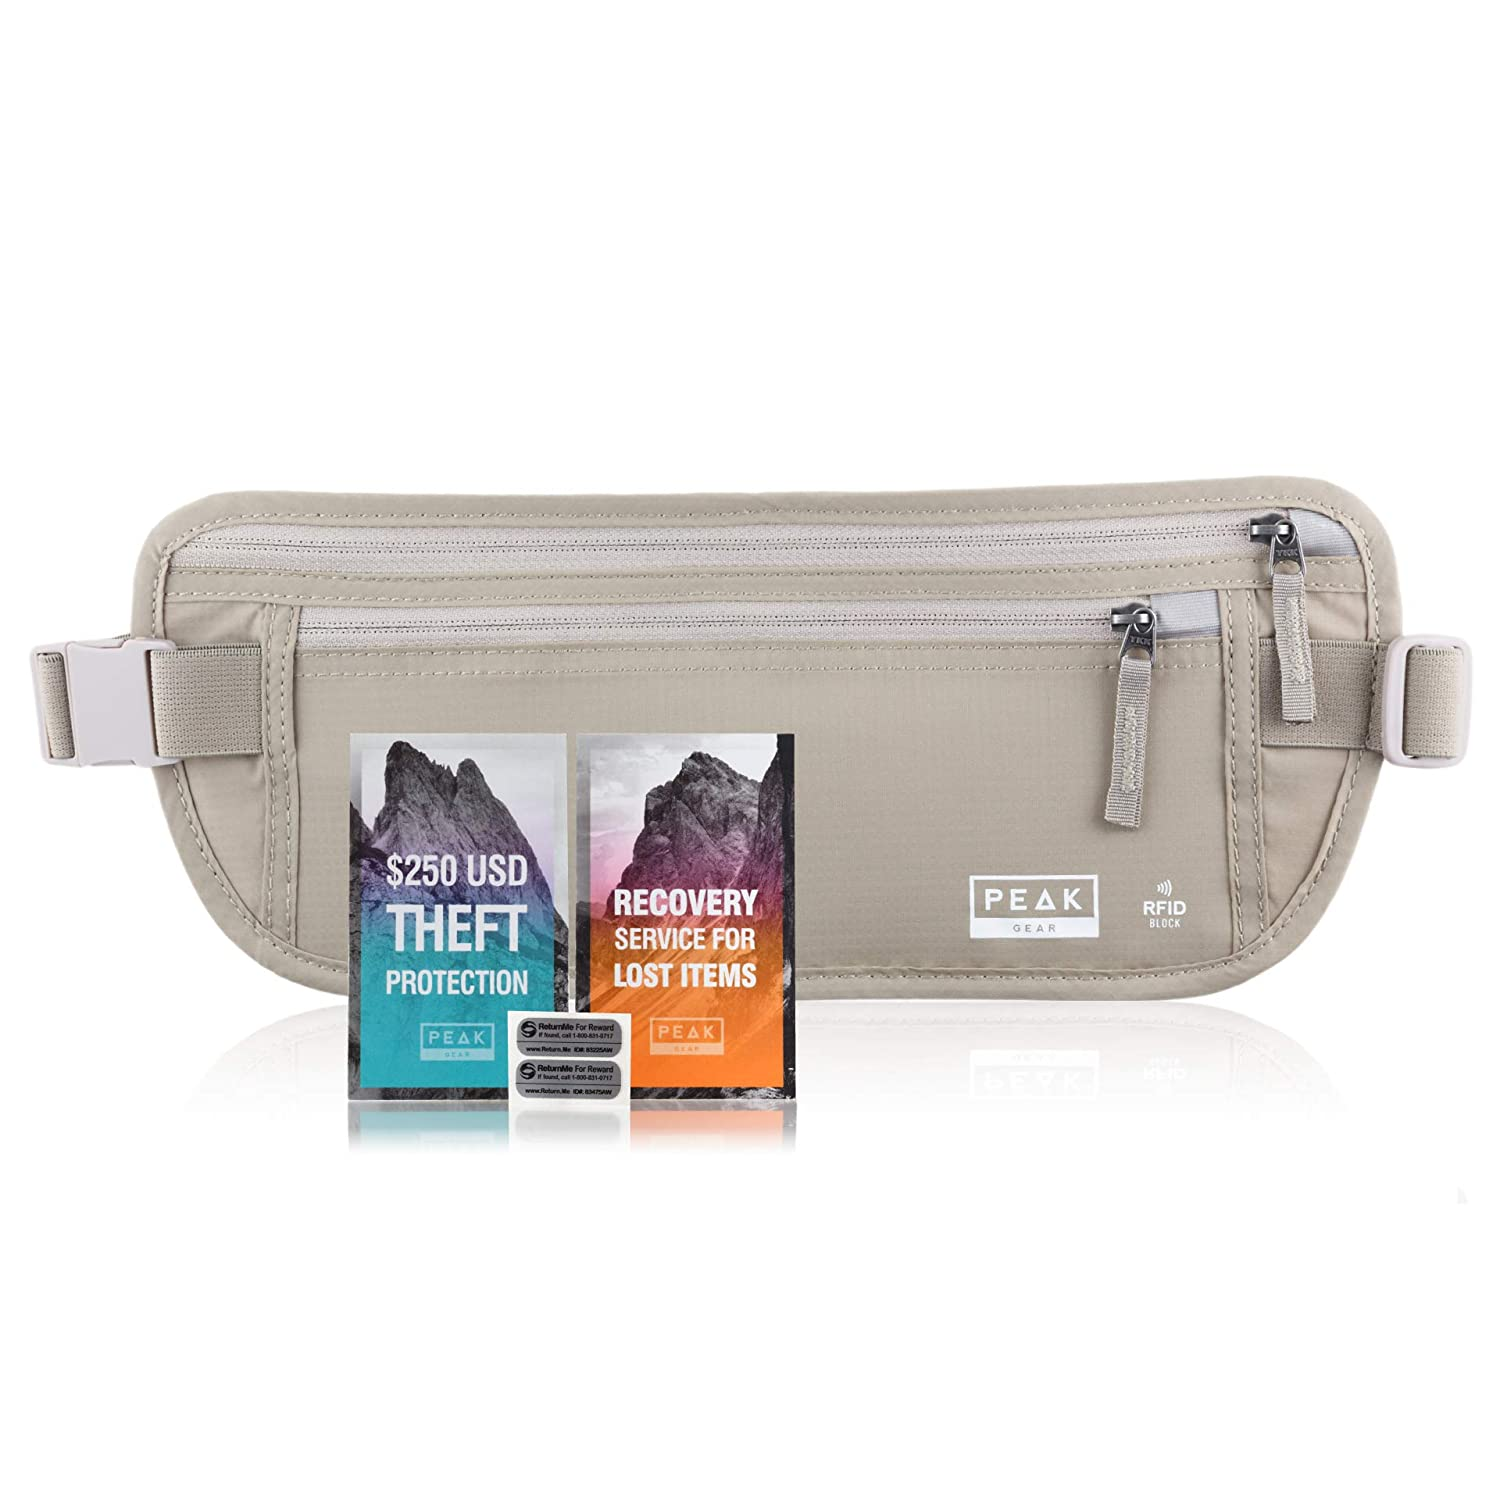 964af6c5e865 Travel Money Belt with RFID Block - Theft Protection and Global Recovery  Tags (Beige REG - fits most)